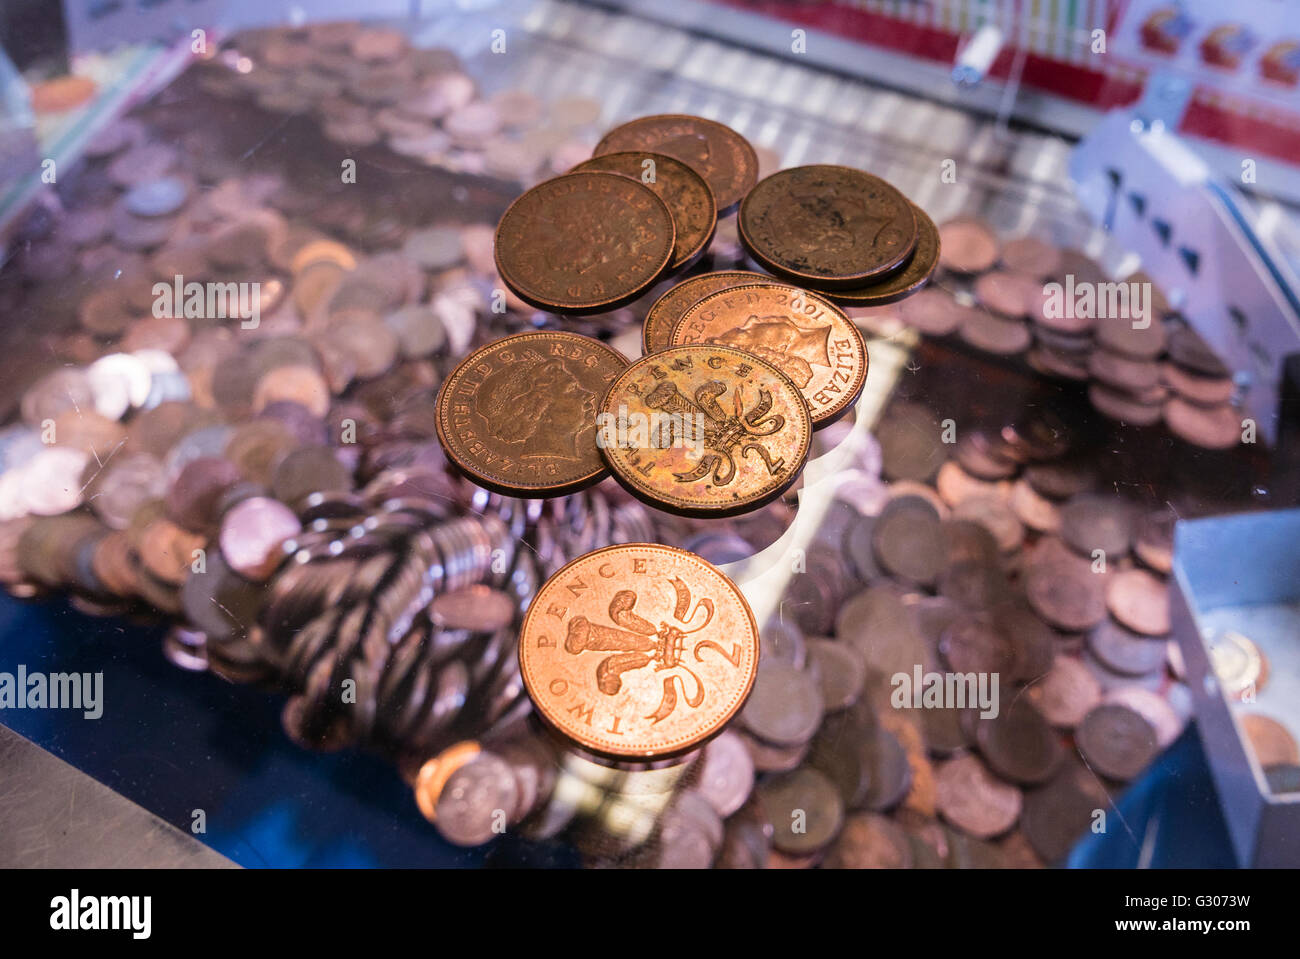 Two-pence coins lie on the glass on top of a 2p nudger machine in a seaside amusement arcade. - Stock Image